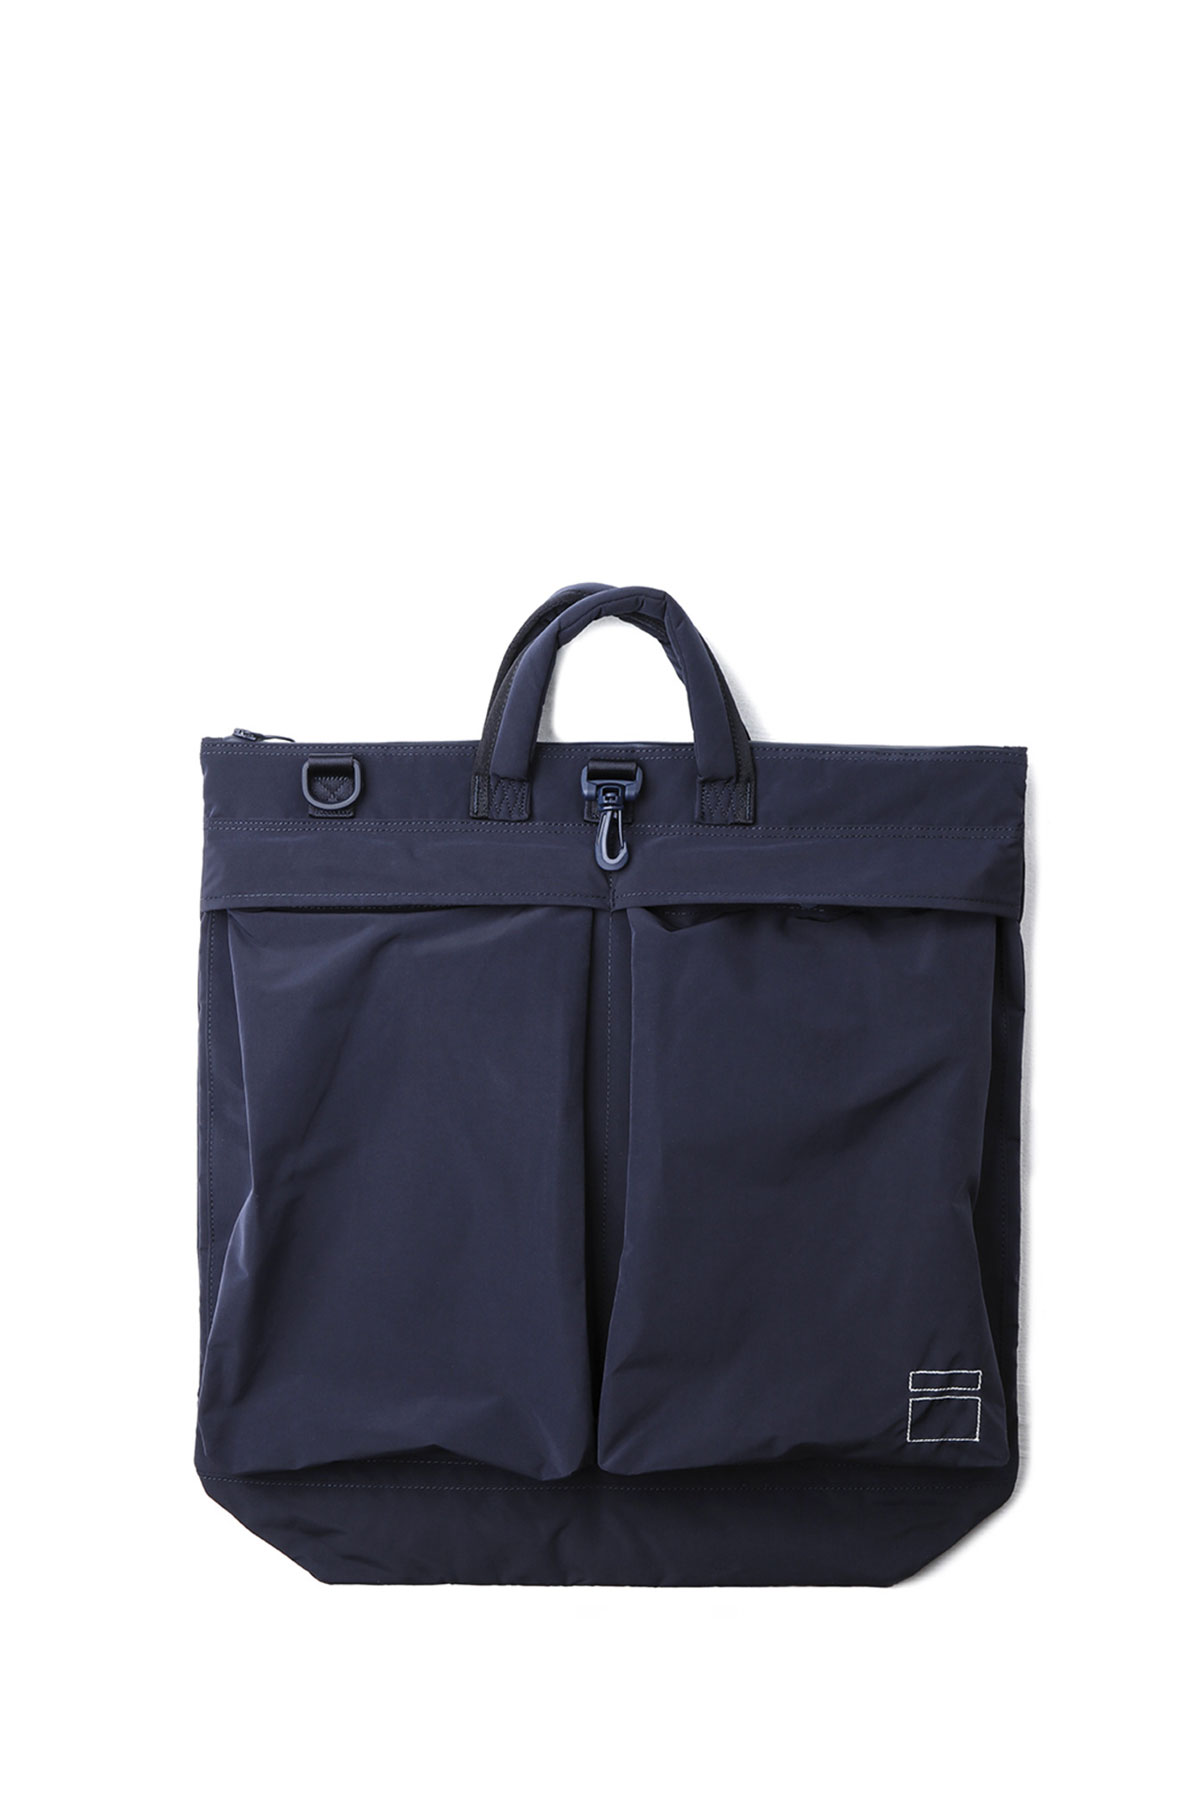 Blankof : BLG 01 24IN Helmet Bag (Navy)